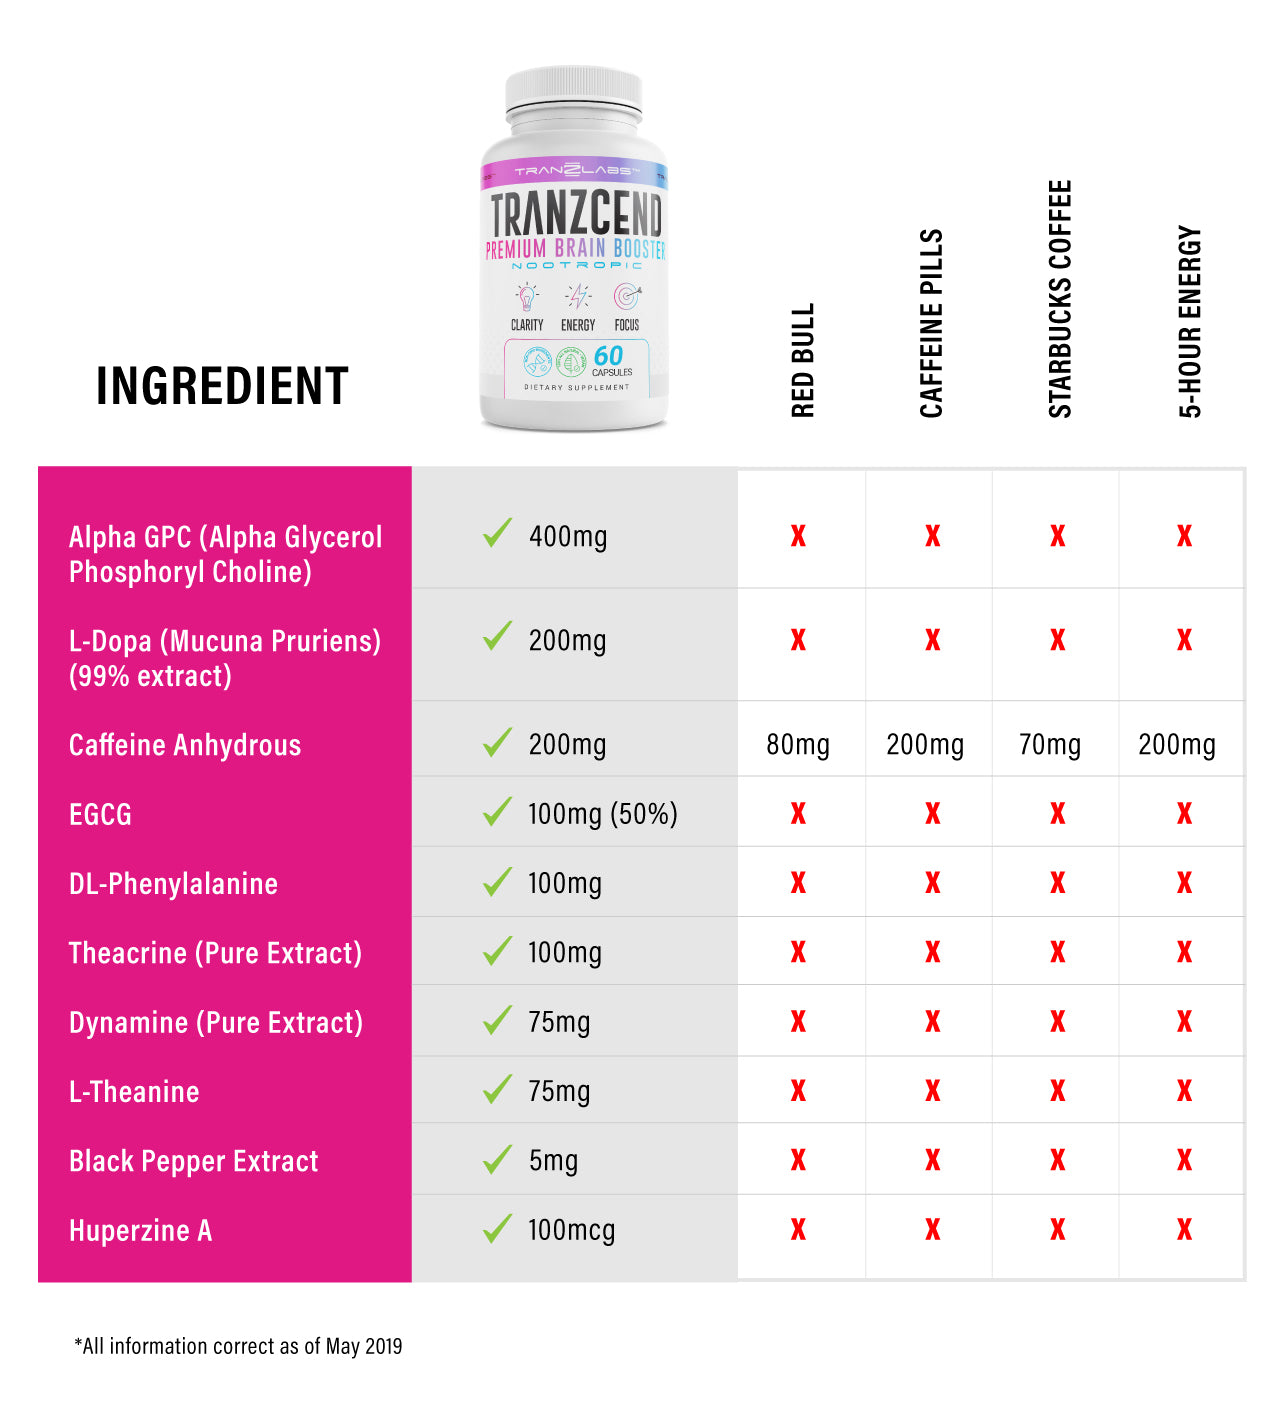 Tranzcend Comparison Ingredients